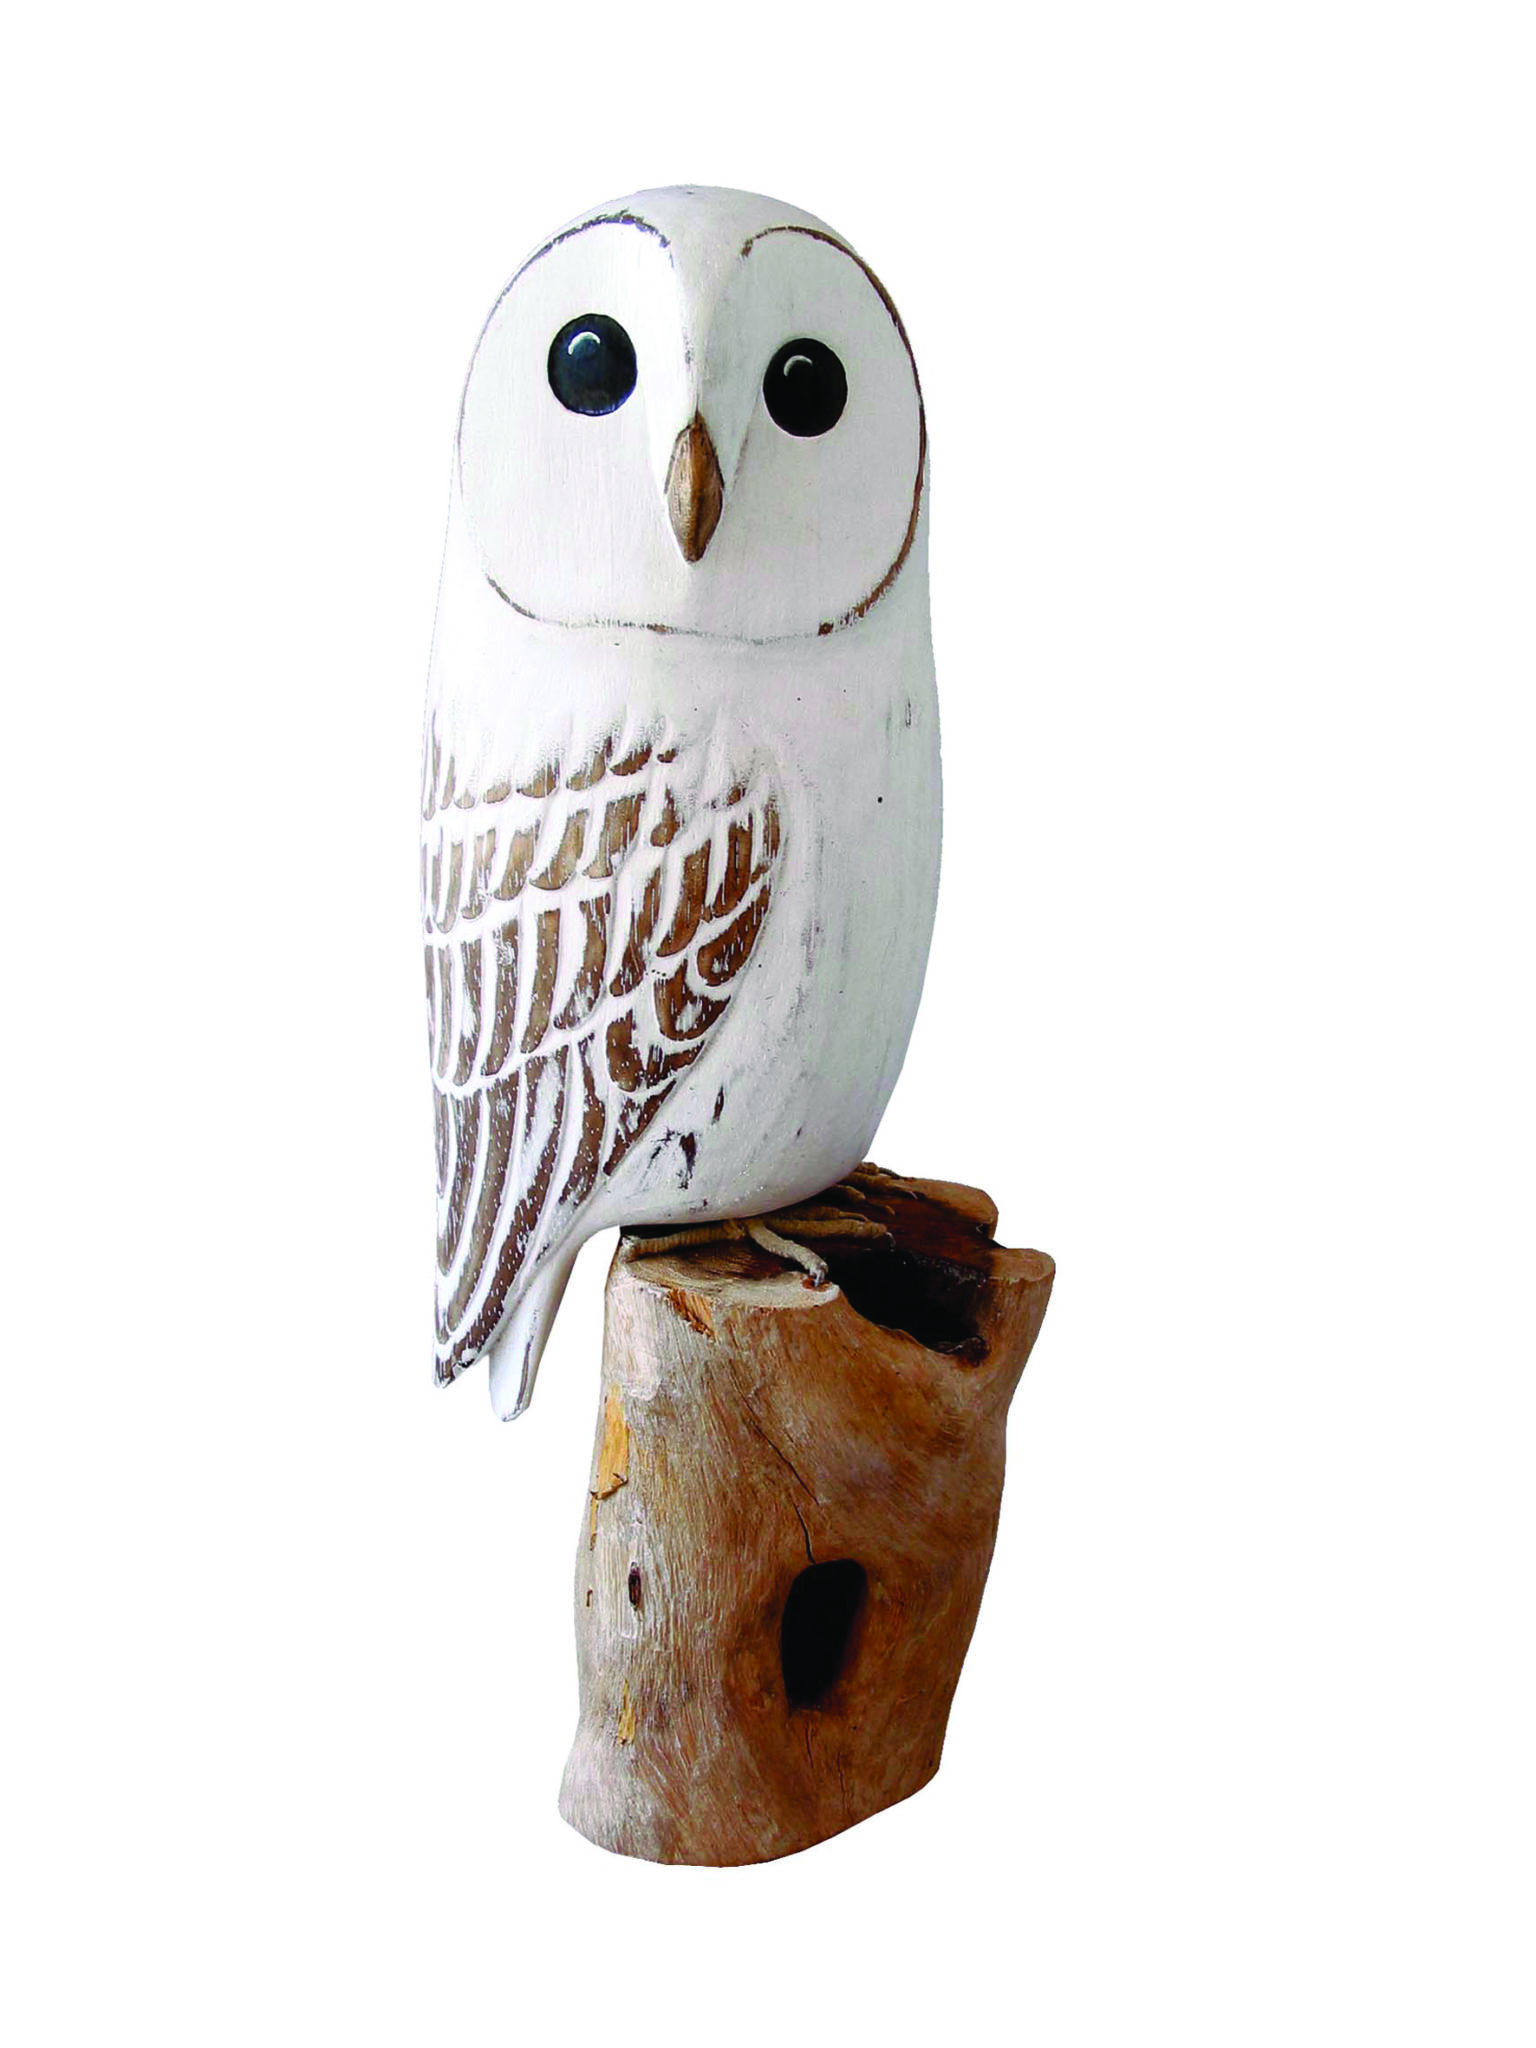 Archipelago Barn Owl Wood Carving D154 white barn owl perched on a log. Fair trade